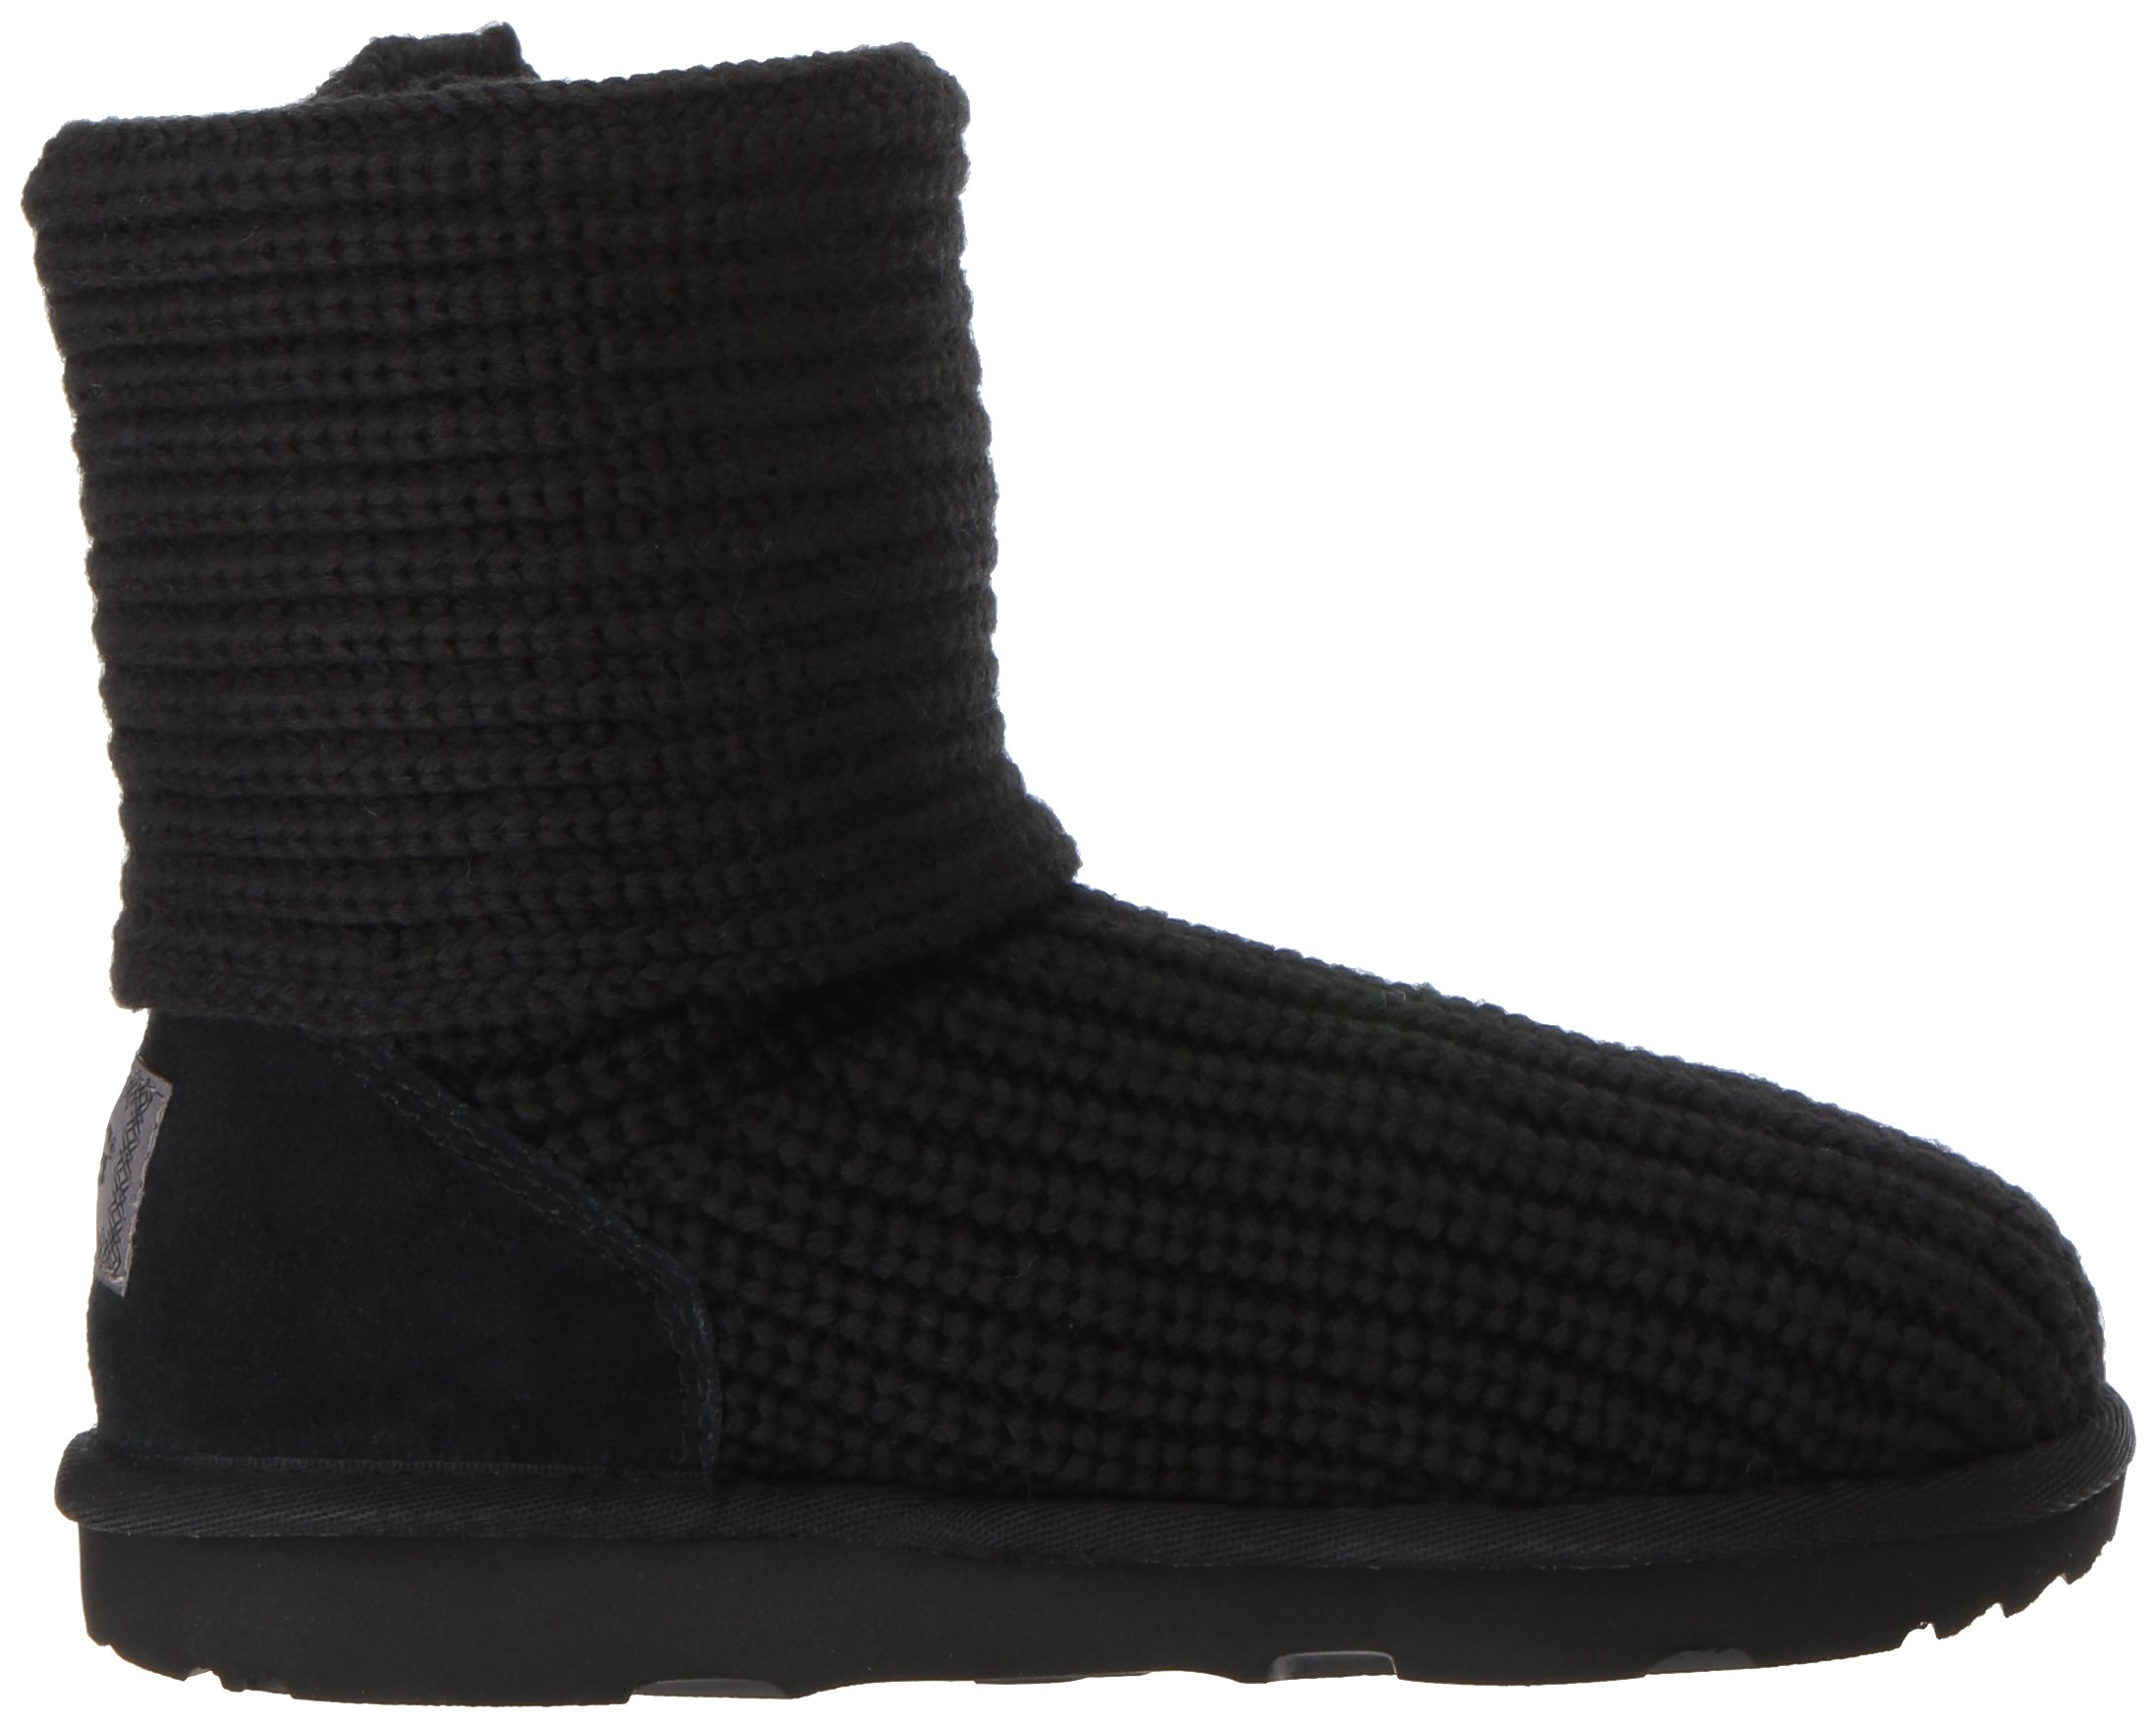 UGG Girls K Cardy II Pull-On Boot, Black, 8 M US Toddler by UGG (Image #7)